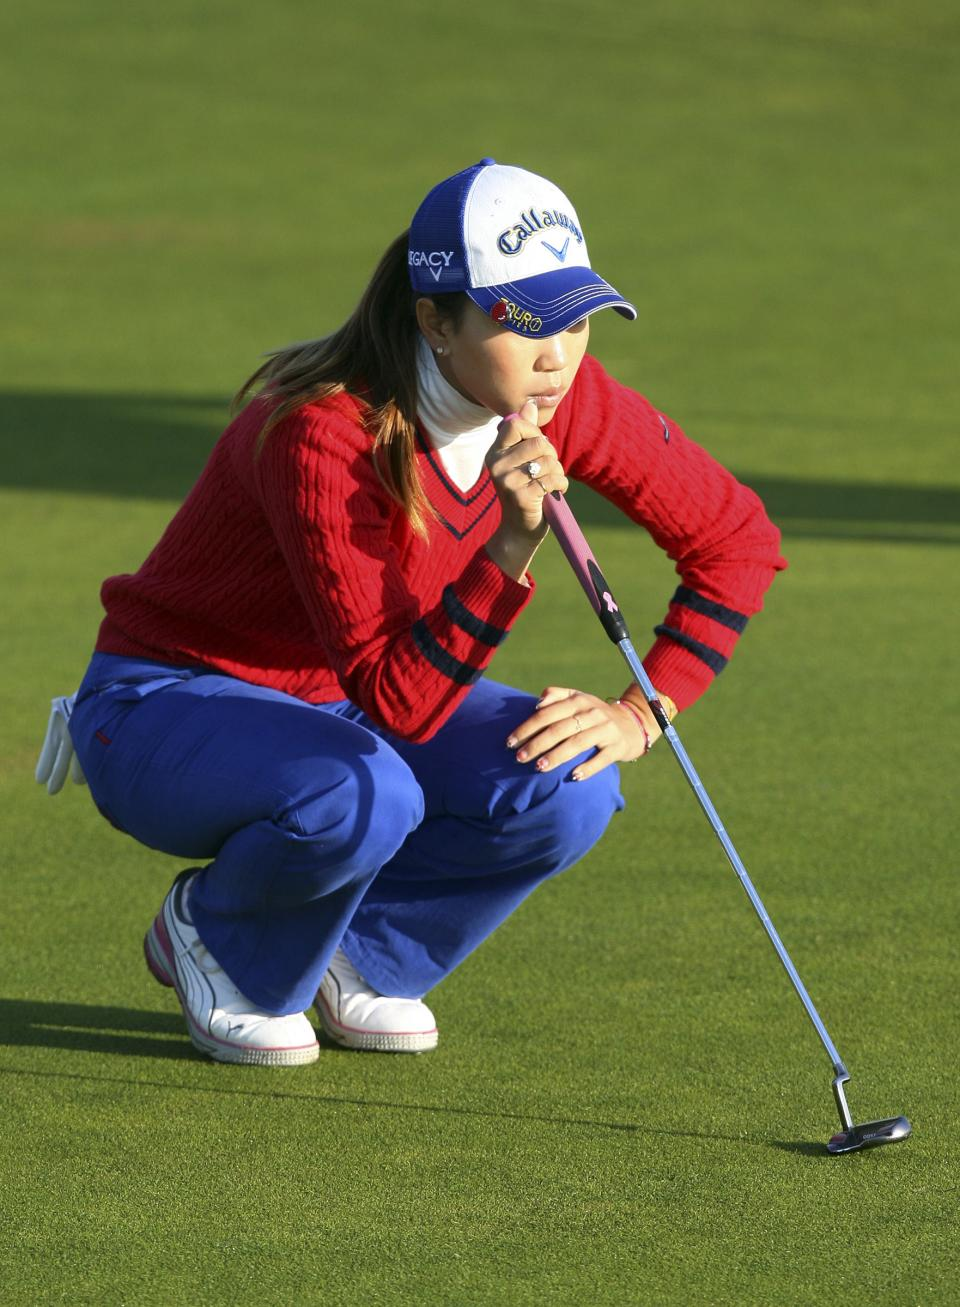 Japan's Momoko Ueda judges her putt on the first during the first round of the Women's British Open at Carnoustie Golf Club, Carnoustie, Scotland, Thursday July 28, 2011.(AP Photo/Scott Heppell)